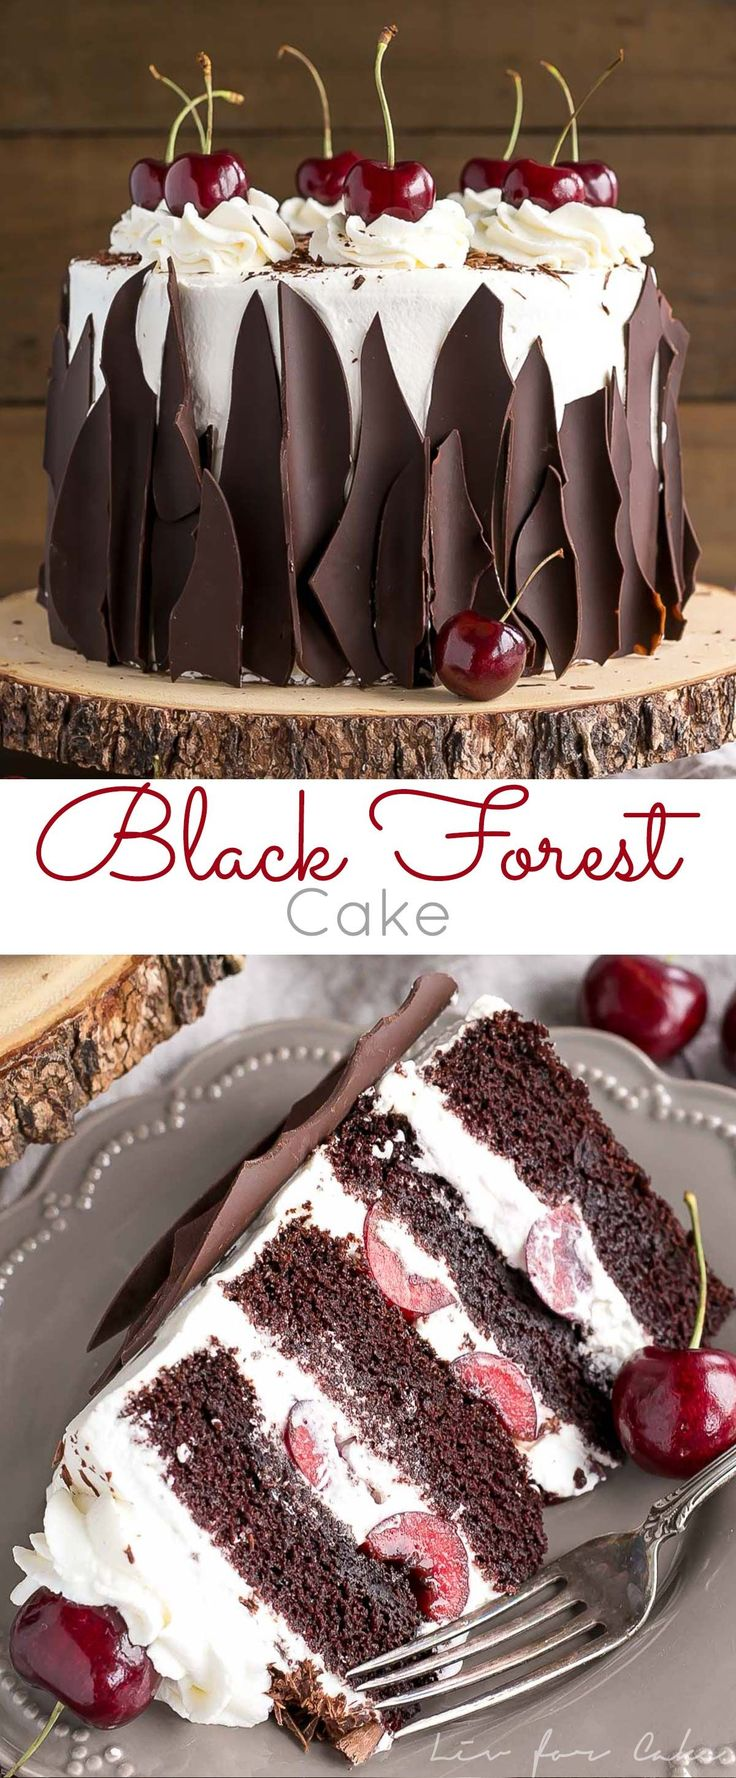 This Black Forest Cake combines rich chocolate cake layers with fresh cherries, cherry liqueur, and a simple whipped cream frosting. | livforcake.com #cake #dessert #blackforest